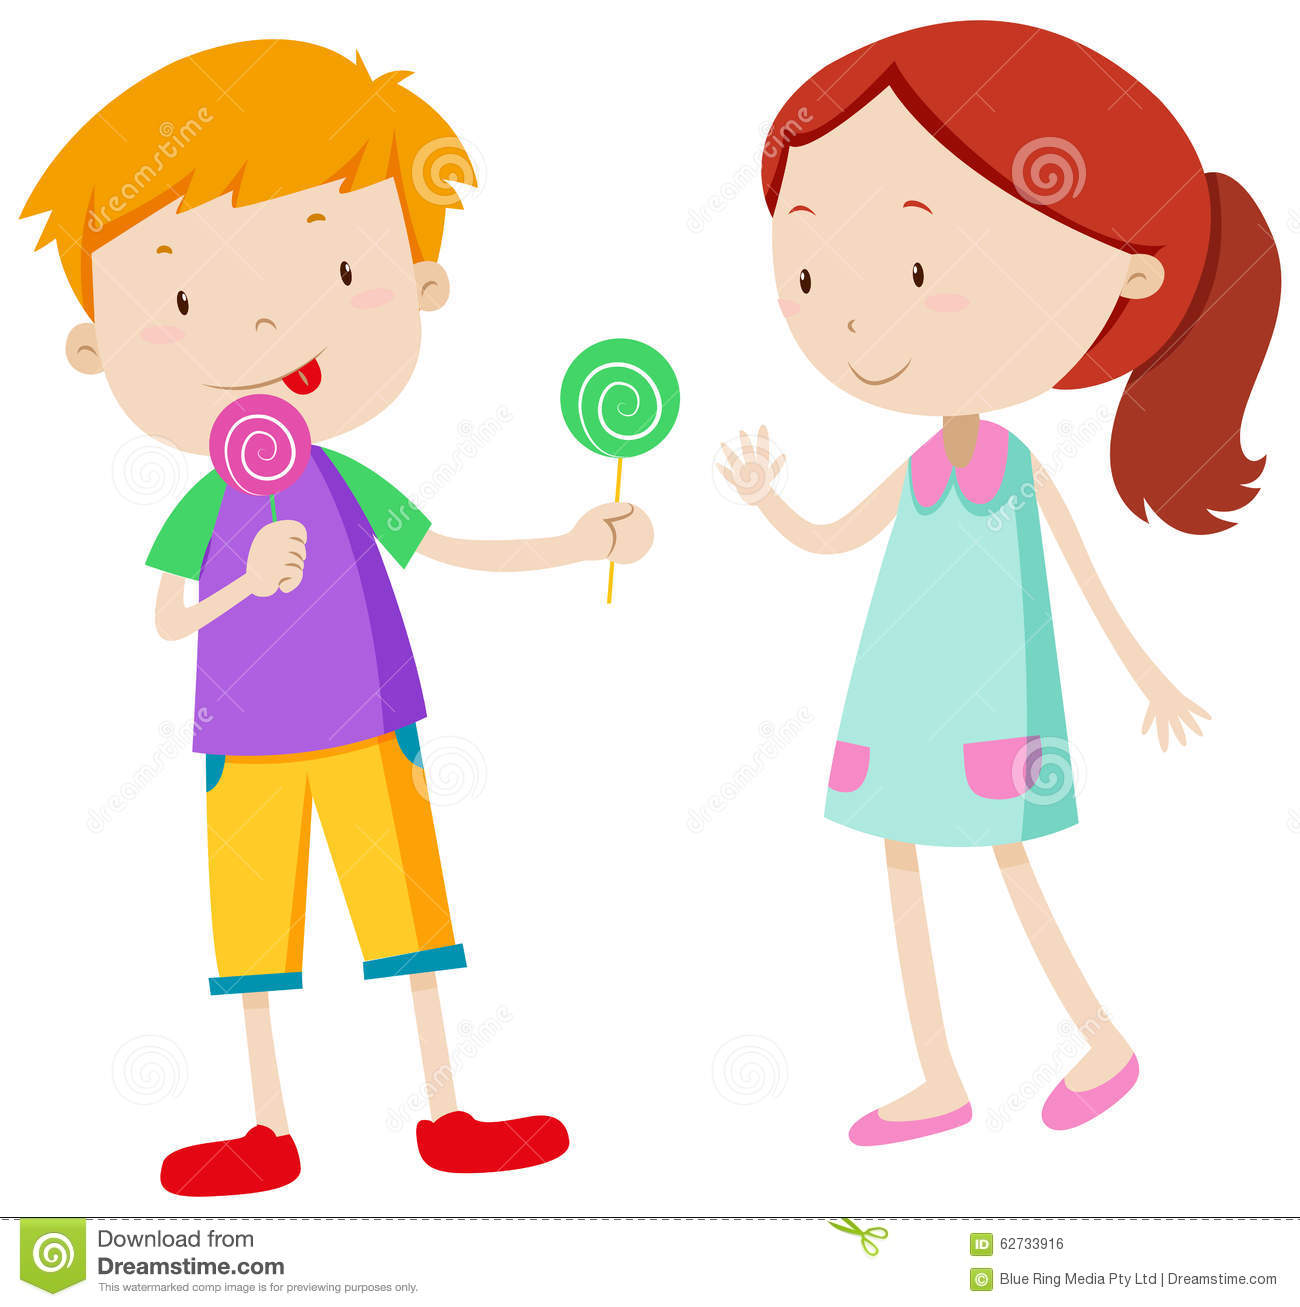 Boys and girls sharing food clipart.